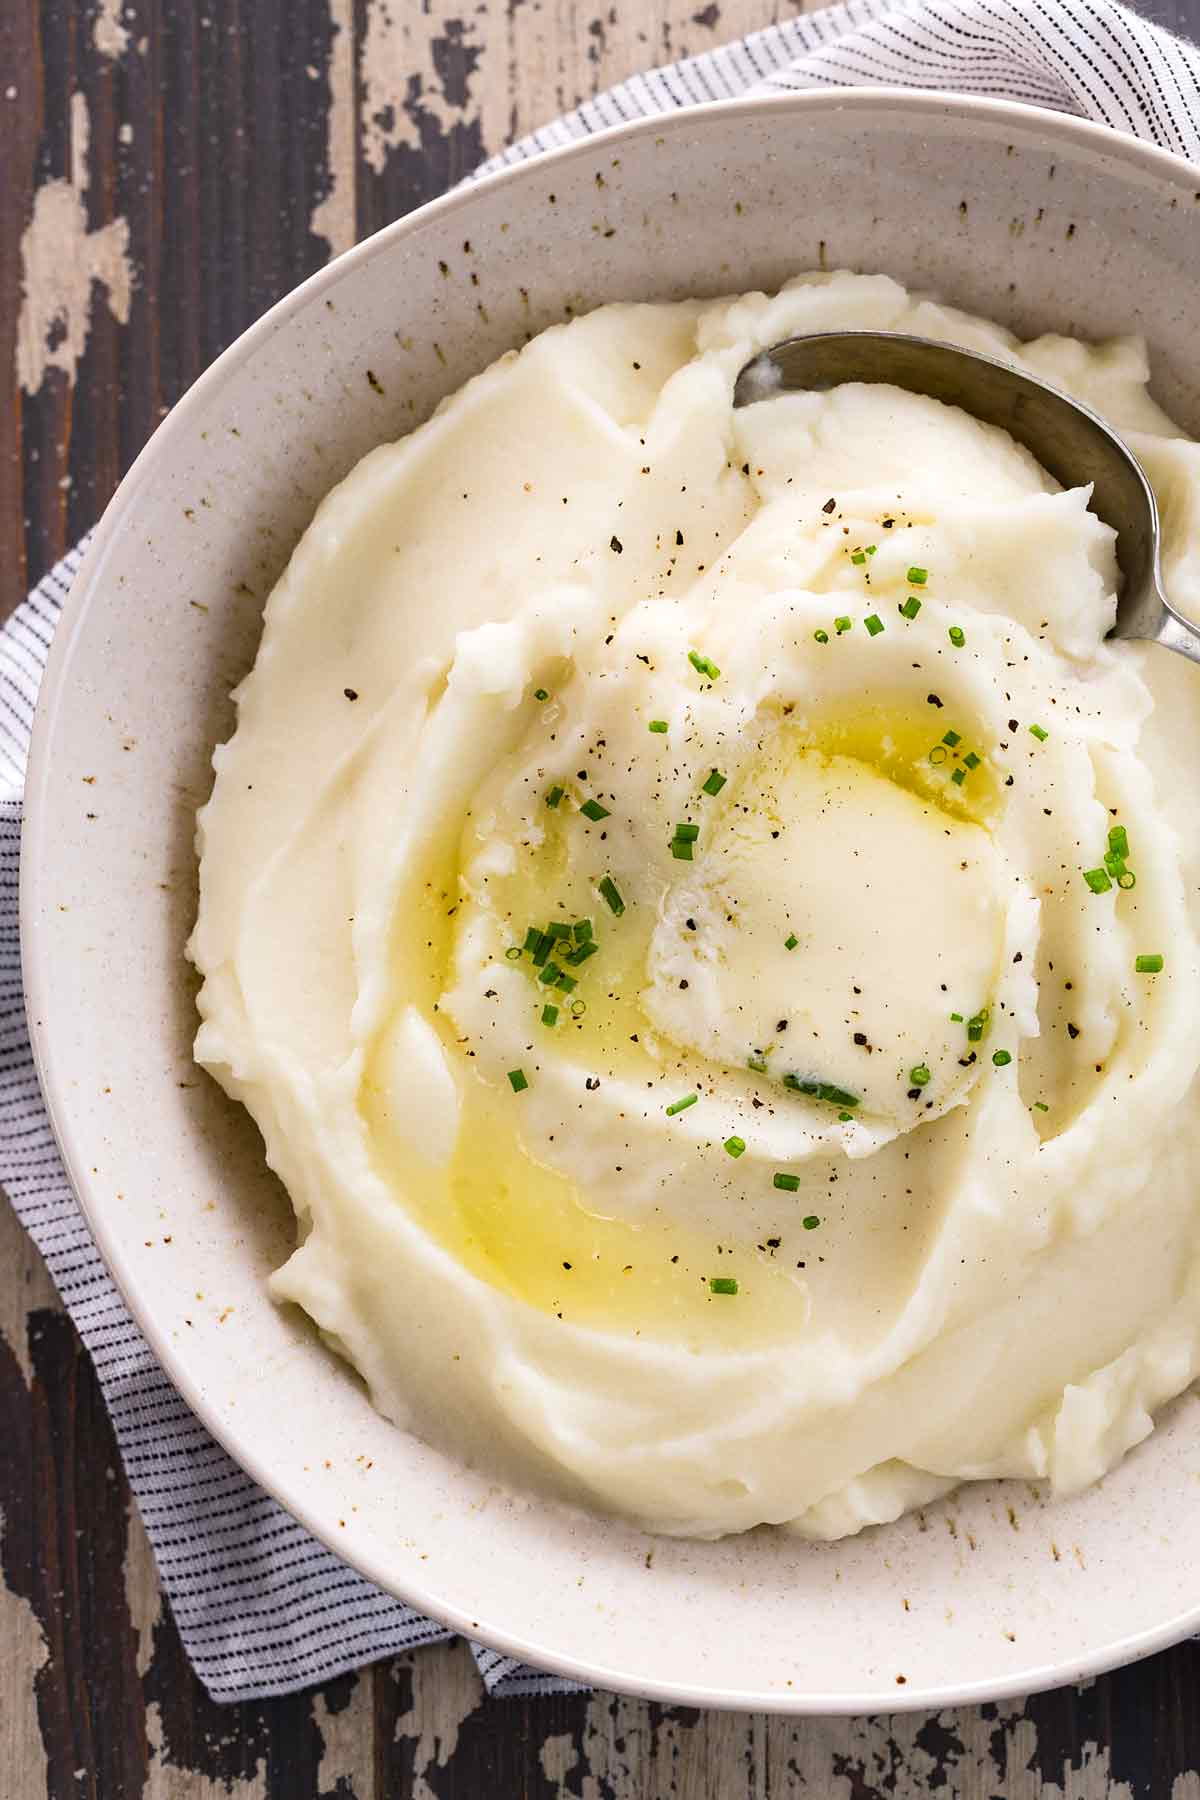 Homemade mashed potatoes prepared using Russet potatoes make for a light, fluffy and creamy side dish.